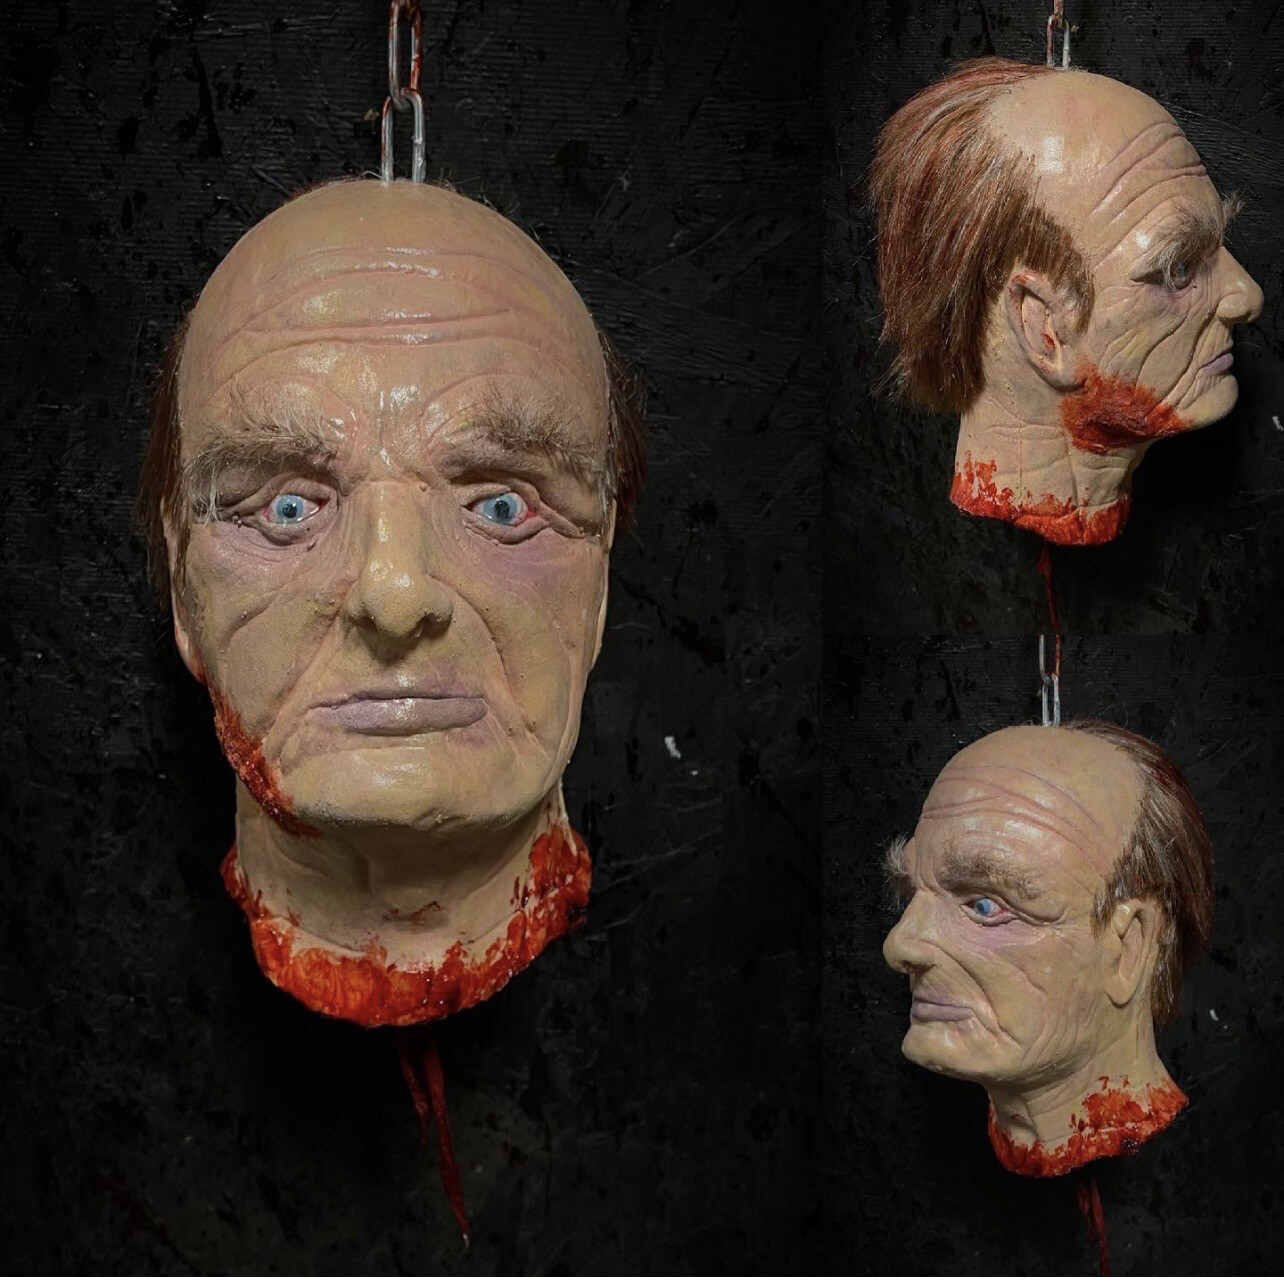 Decapitated Old Man Head